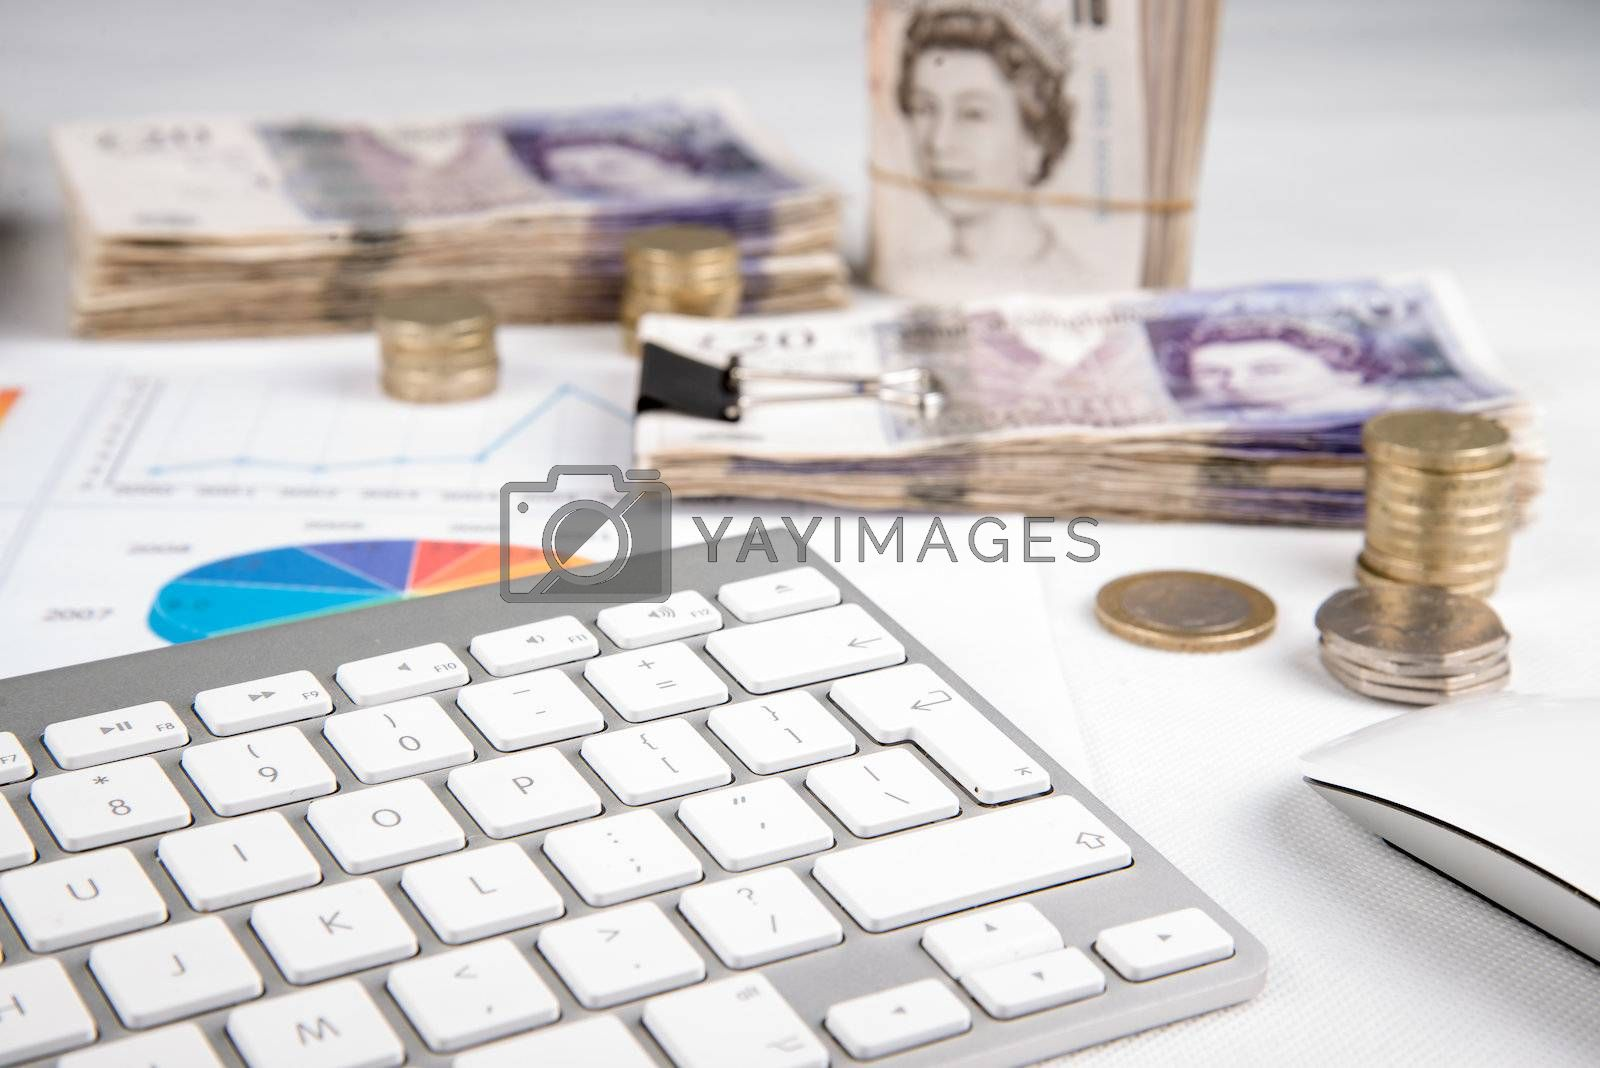 British pound sterling coins and bank notes on desk with keyboard